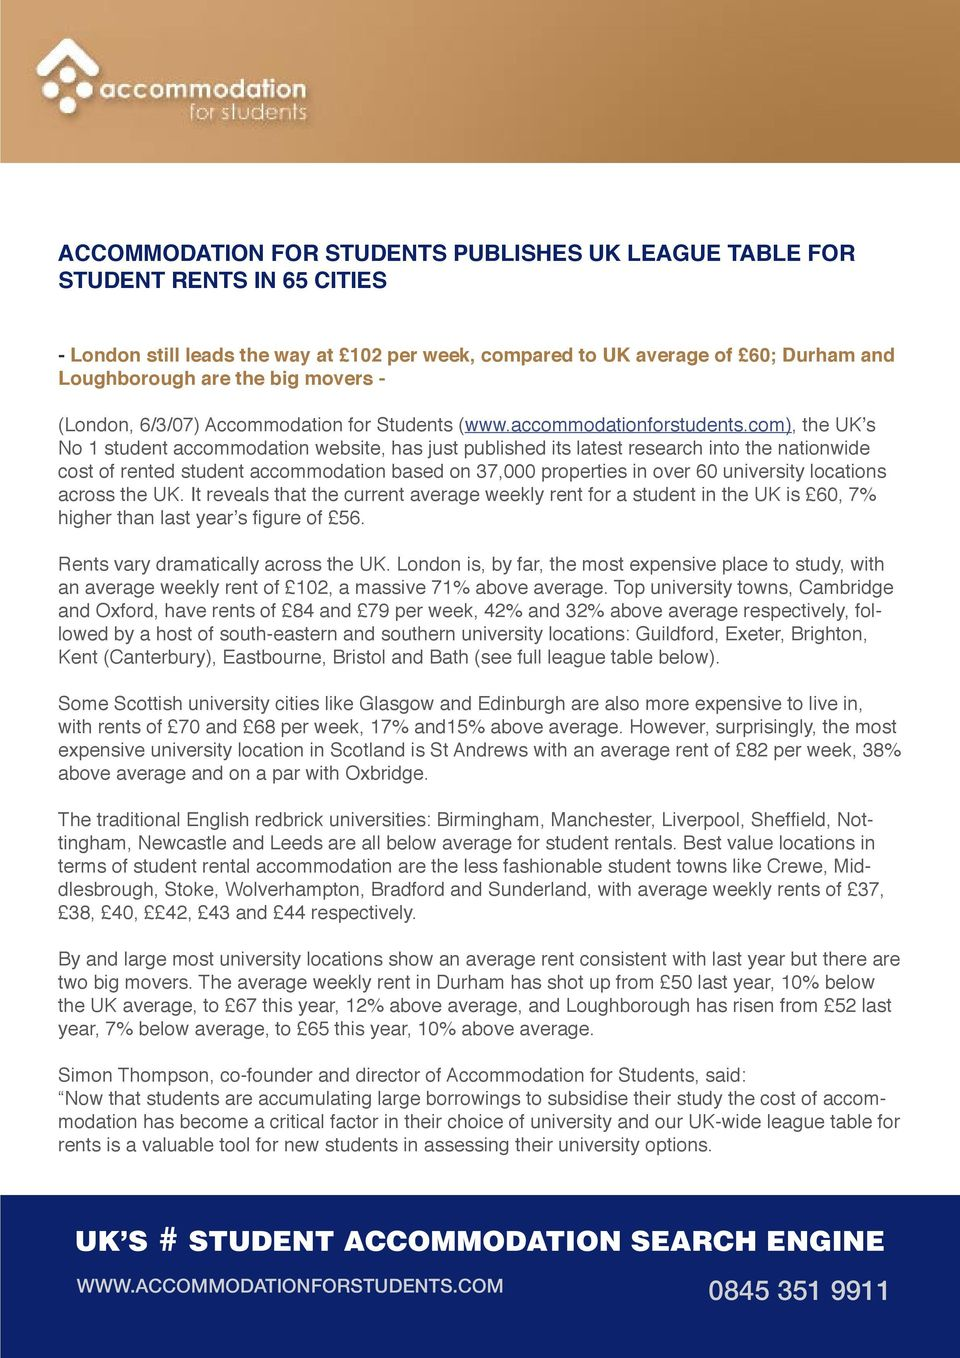 com), the UK s No 1 student accommodation website, has just published its latest research into the nationwide cost of rented student accommodation based on 37,000 properties in over 60 university